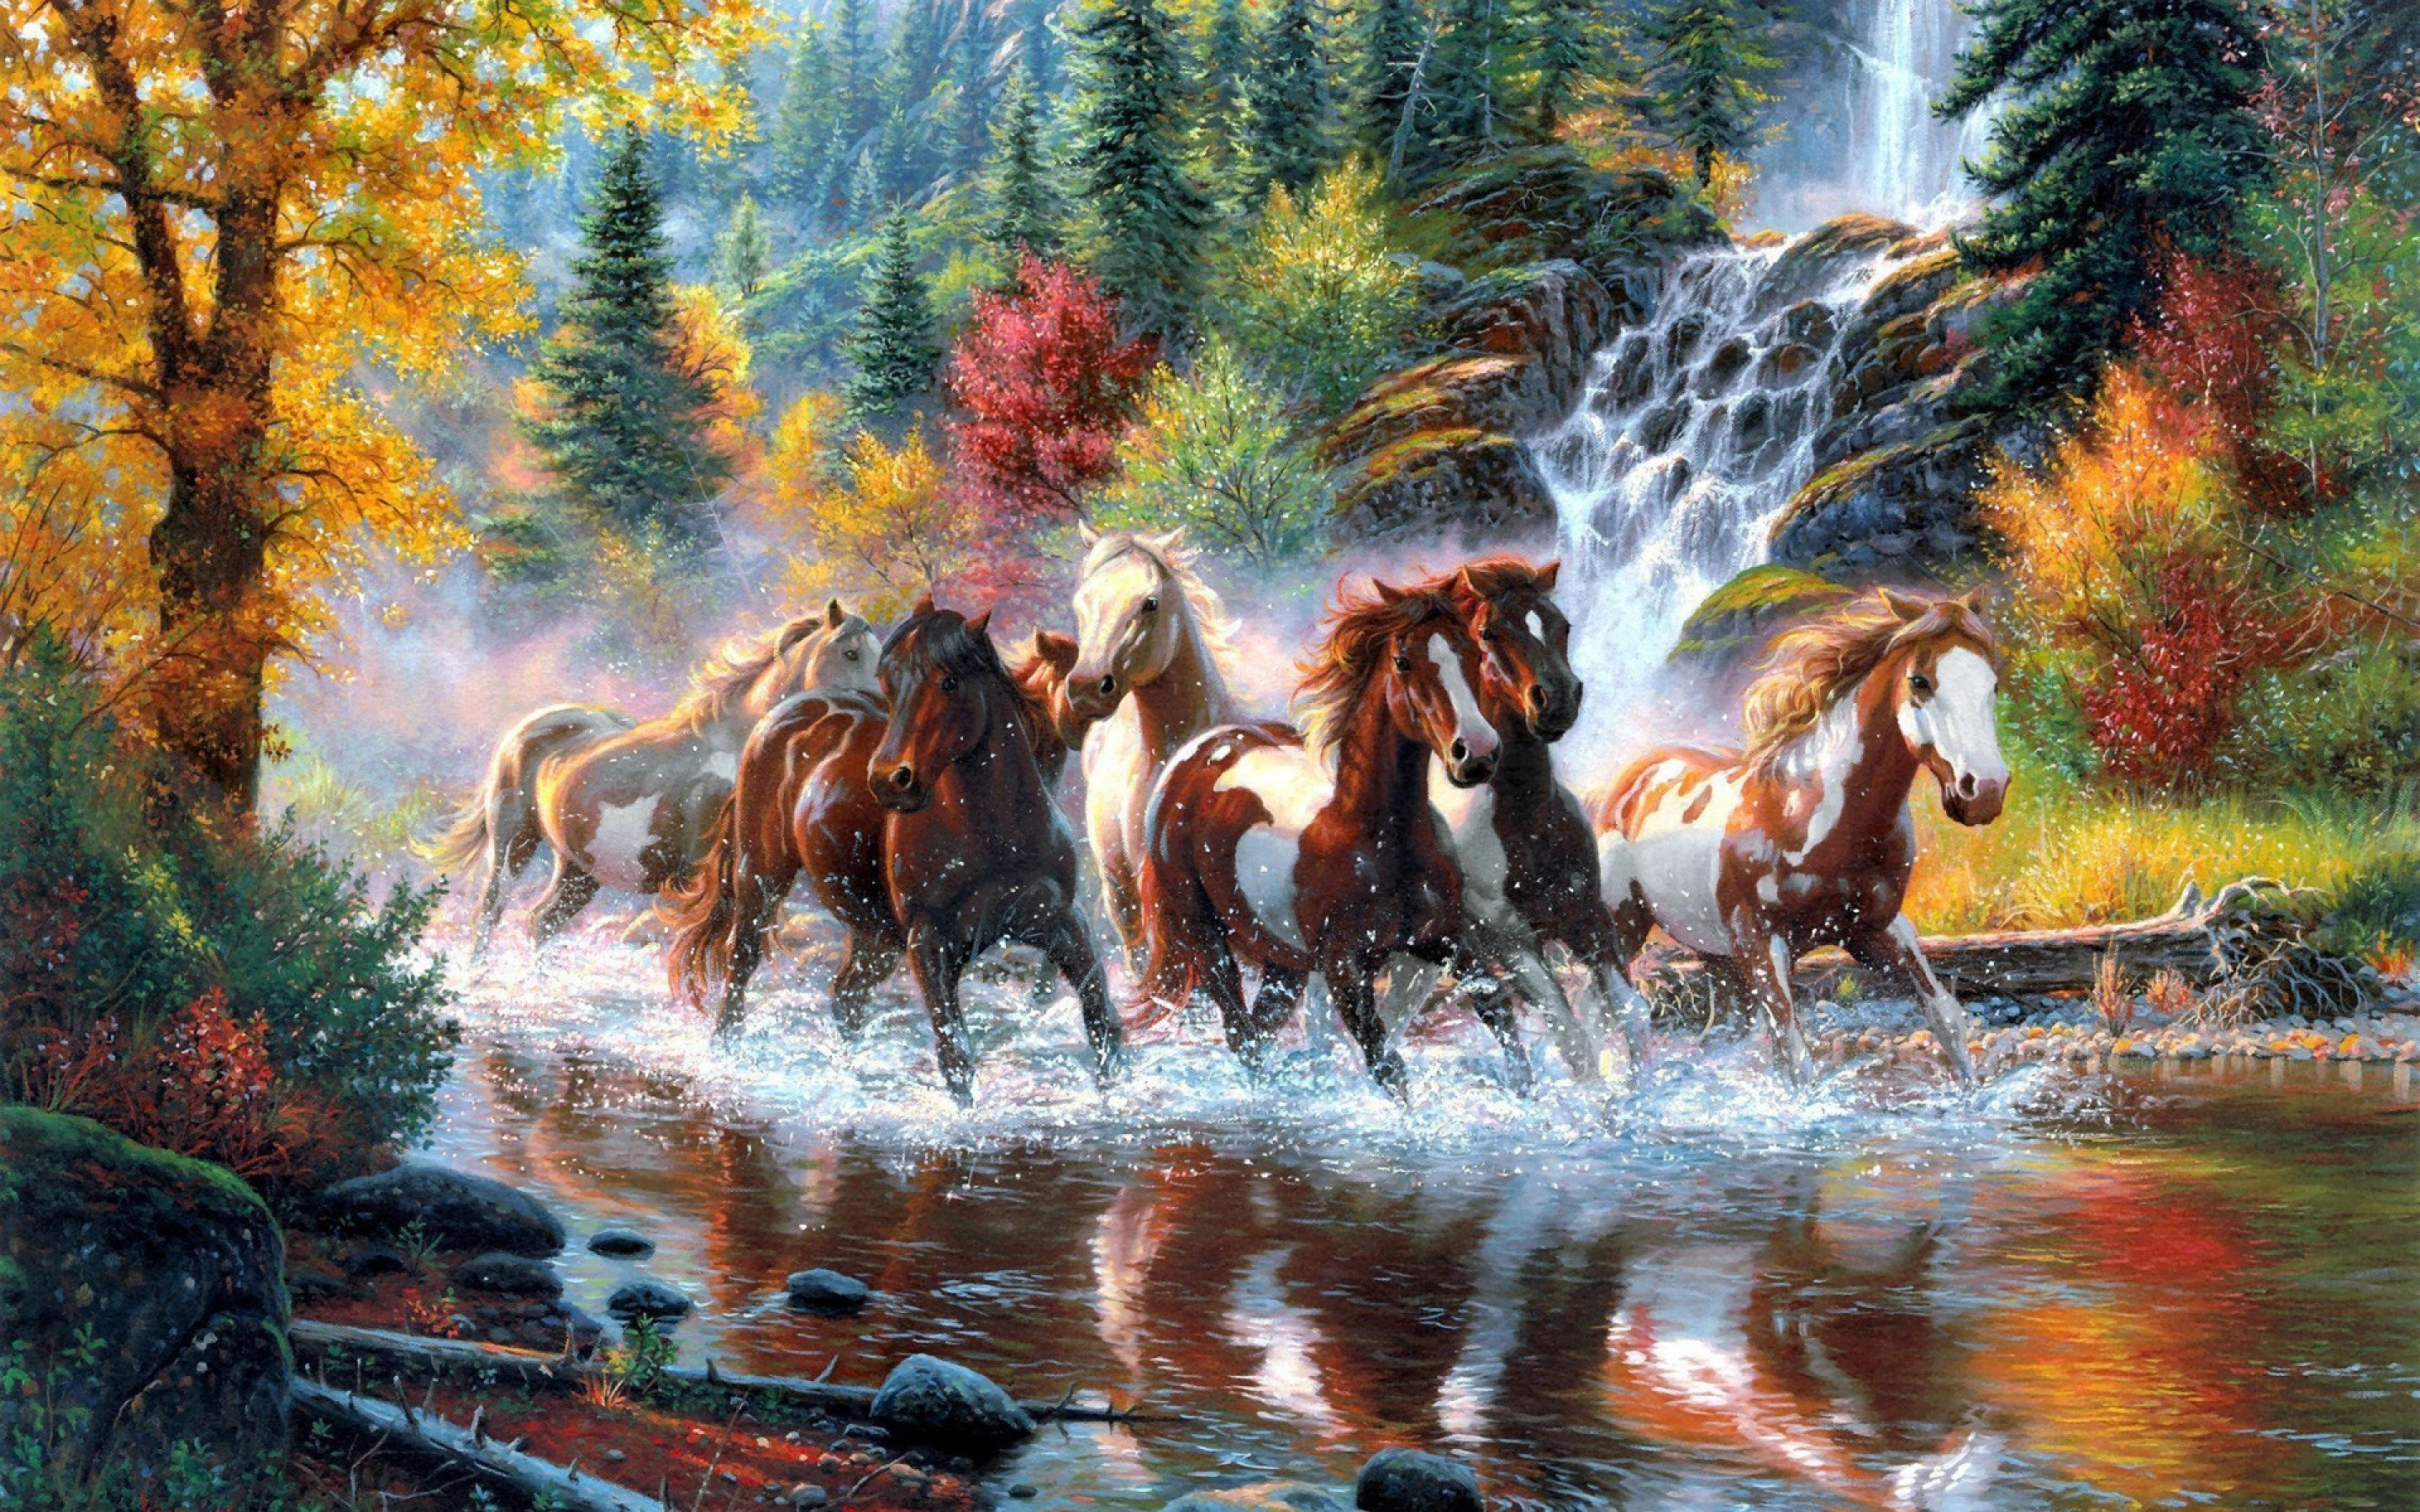 2880x1800 Landscape Nature Tree Forest Woods River Horse Artwork Painting Waterfall  Autumn Country Wester Native American Indian Wallpaper At Fantasy Wallpapers